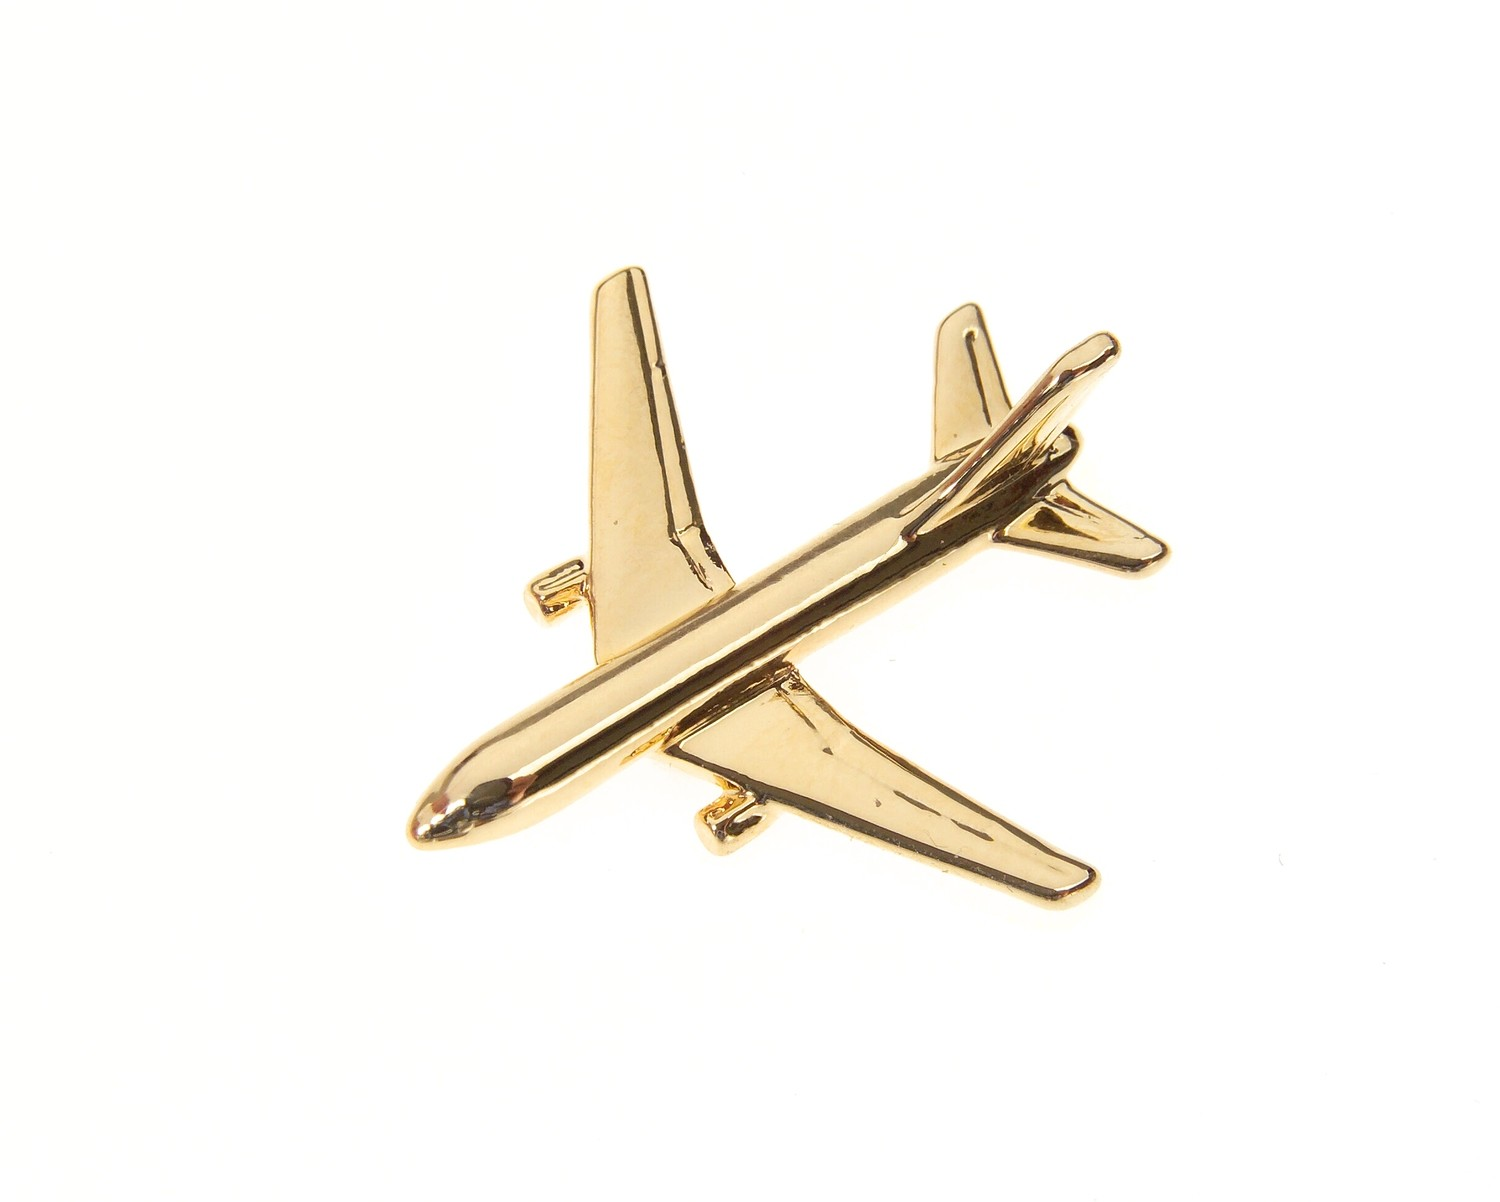 Boeing 767-200 Gold Plated Tie / Lapel Pin